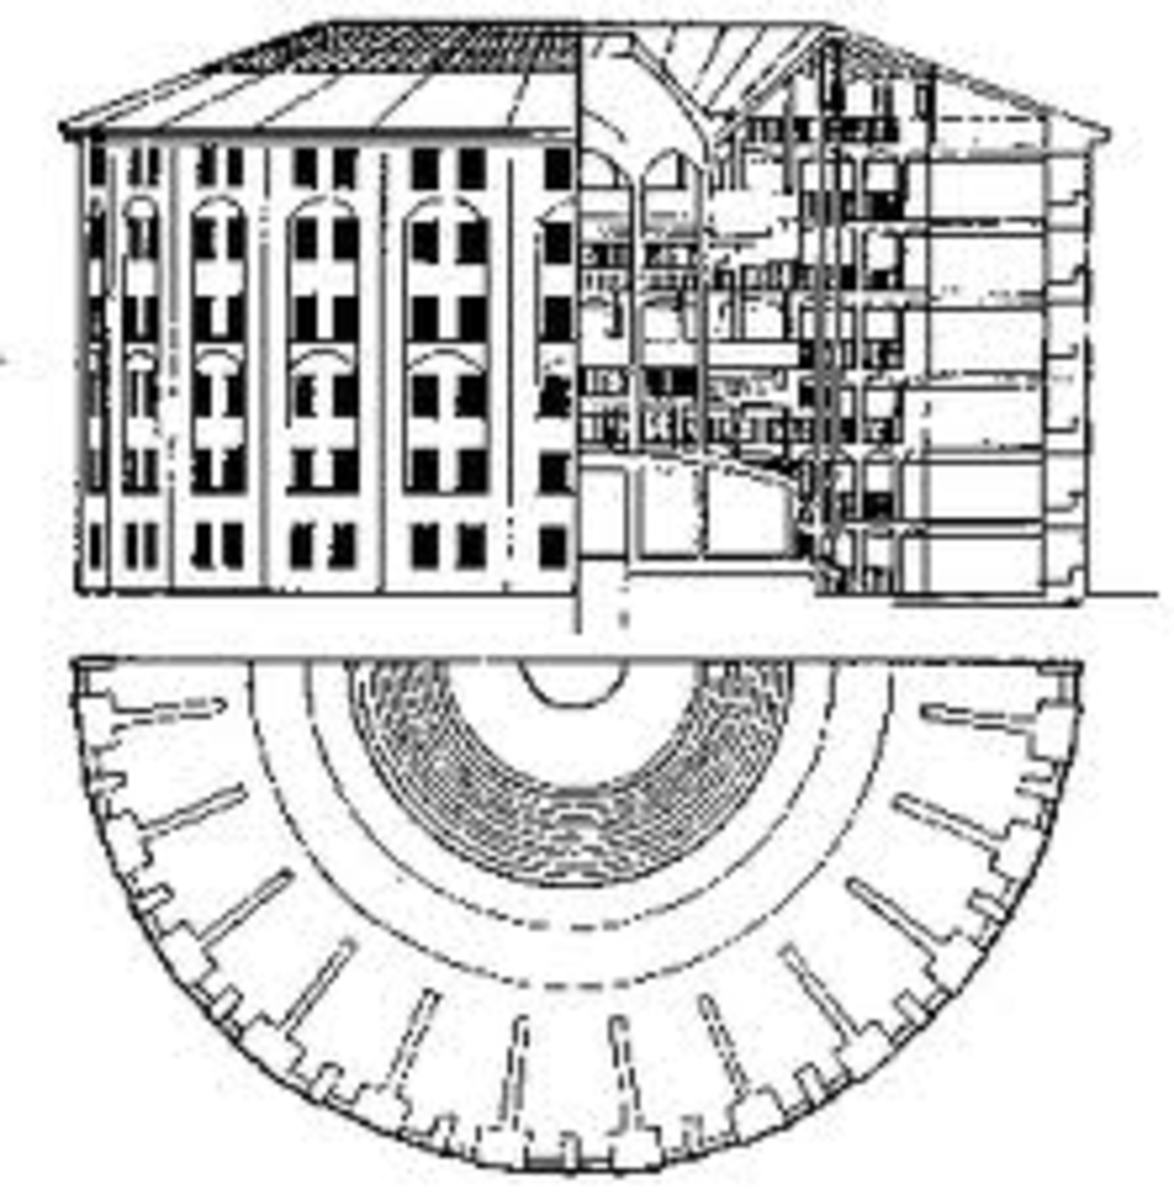 The panopticon diagram